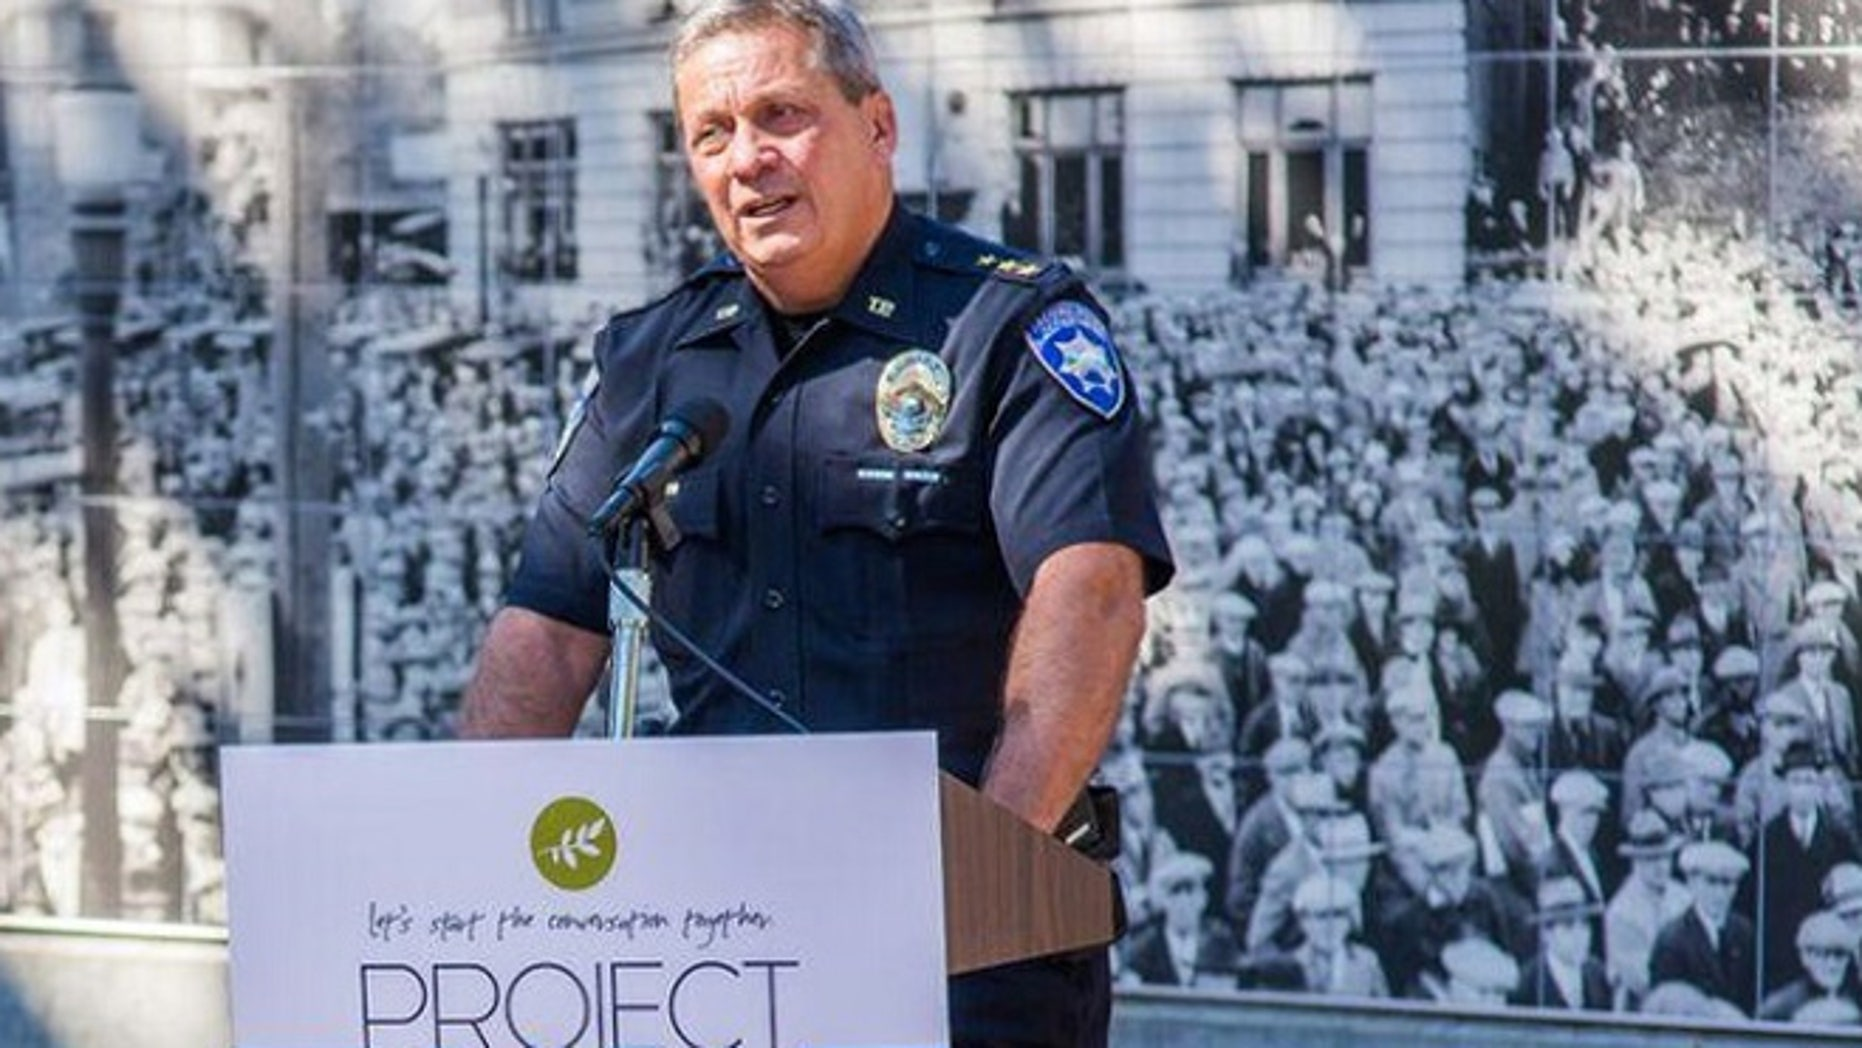 Tacoma Police Chief Don Ramsdell has supported the proposed project for an anonymous drop box to get guns off city streets.